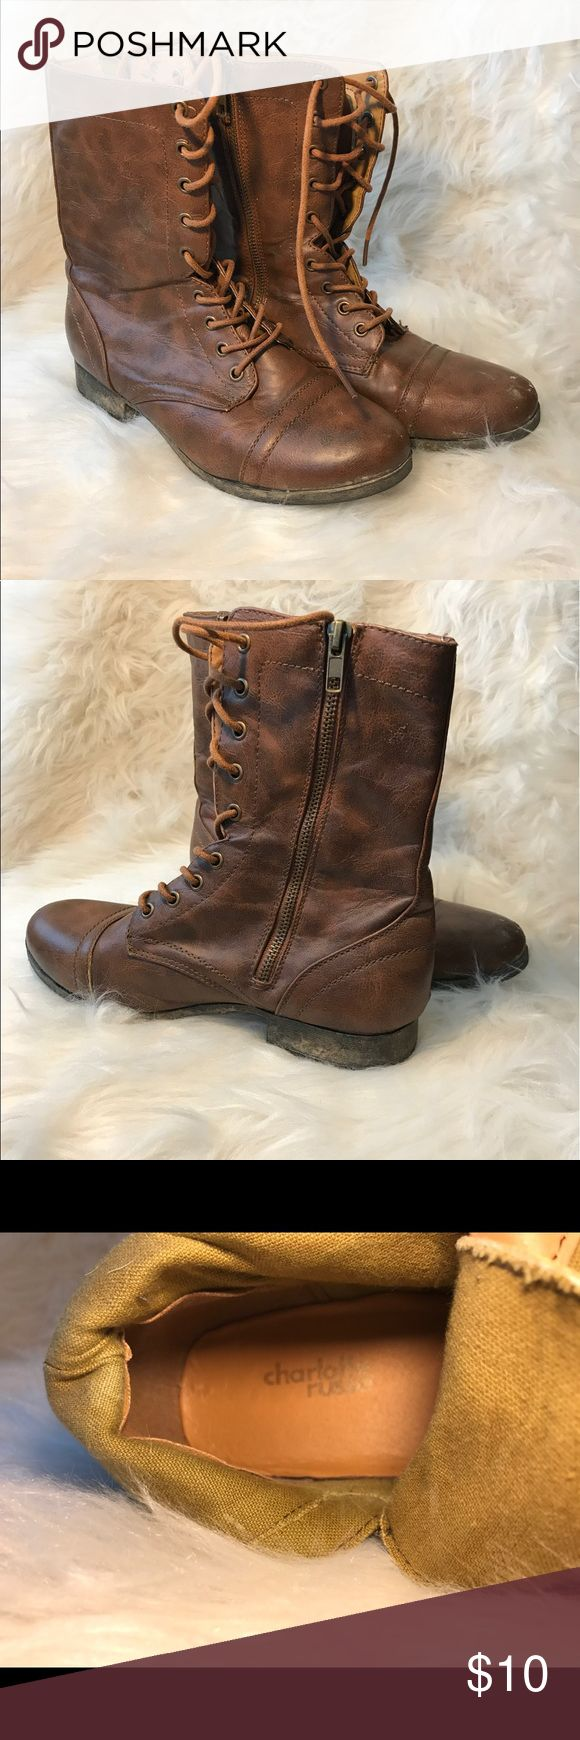 CHARLOTTE RUSSE COMBAT BOOTS SIZE 8 Size 8! Super cute and comfy. Very versatile! Bought from Charlotte Russe! I never wear them anymore. Good/worn condition. Charlotte Russe Shoes Combat & Moto Boots